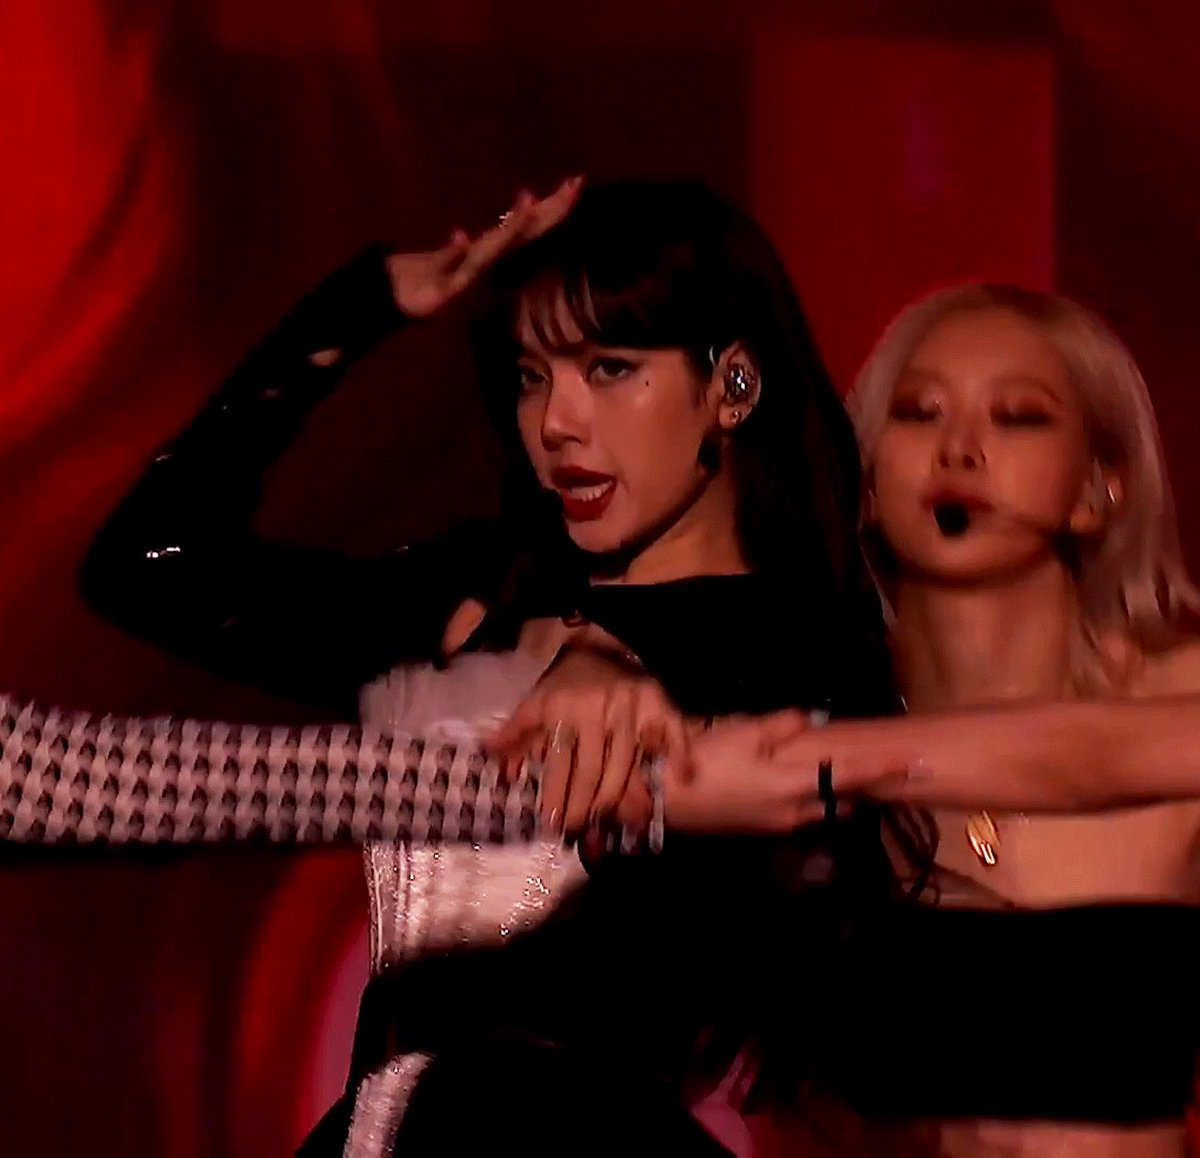 Lisa just keep on staying as always   LALISA MANOBAN  PRETTY SAVAGE LISA  #BLACKPINKxCorden @BLACKPINK